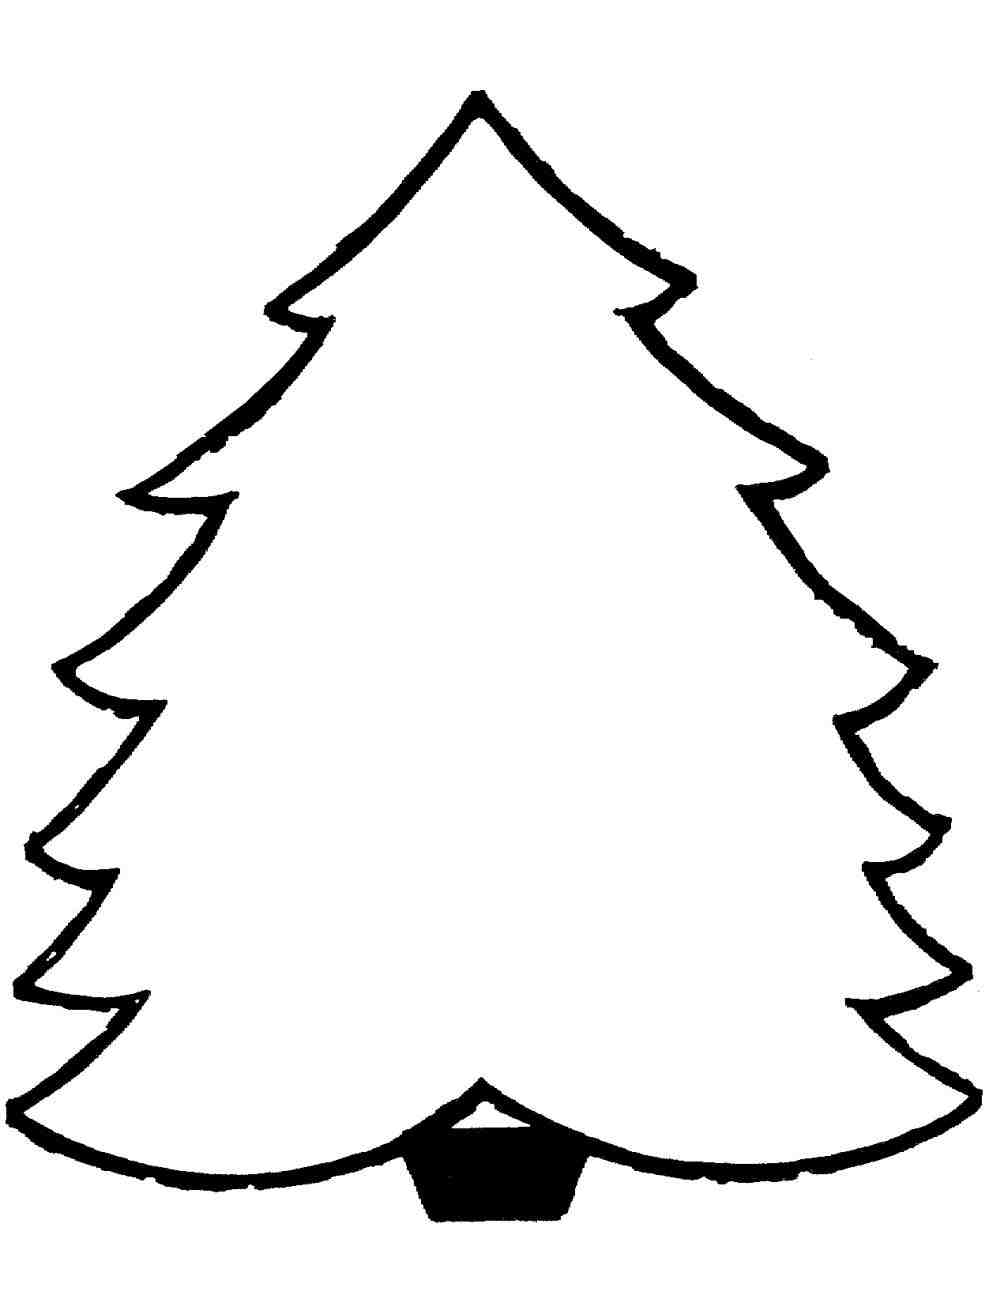 985x1314 Christmas Tree Clipart Black And White cheminee.website